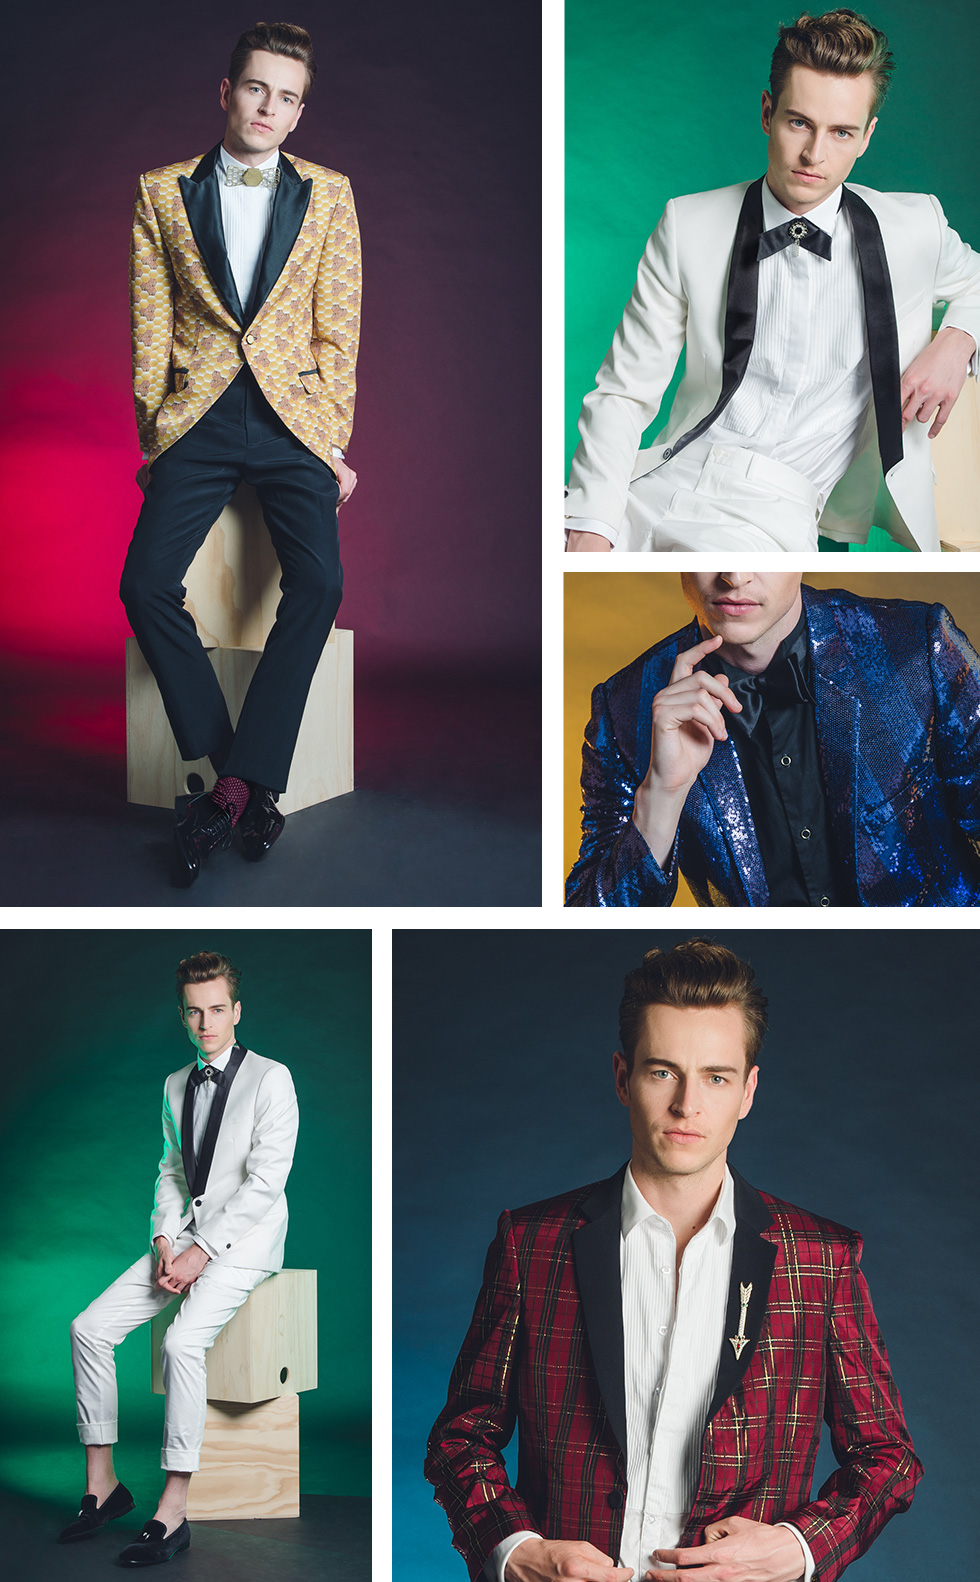 menswear-fashion-editorial-2